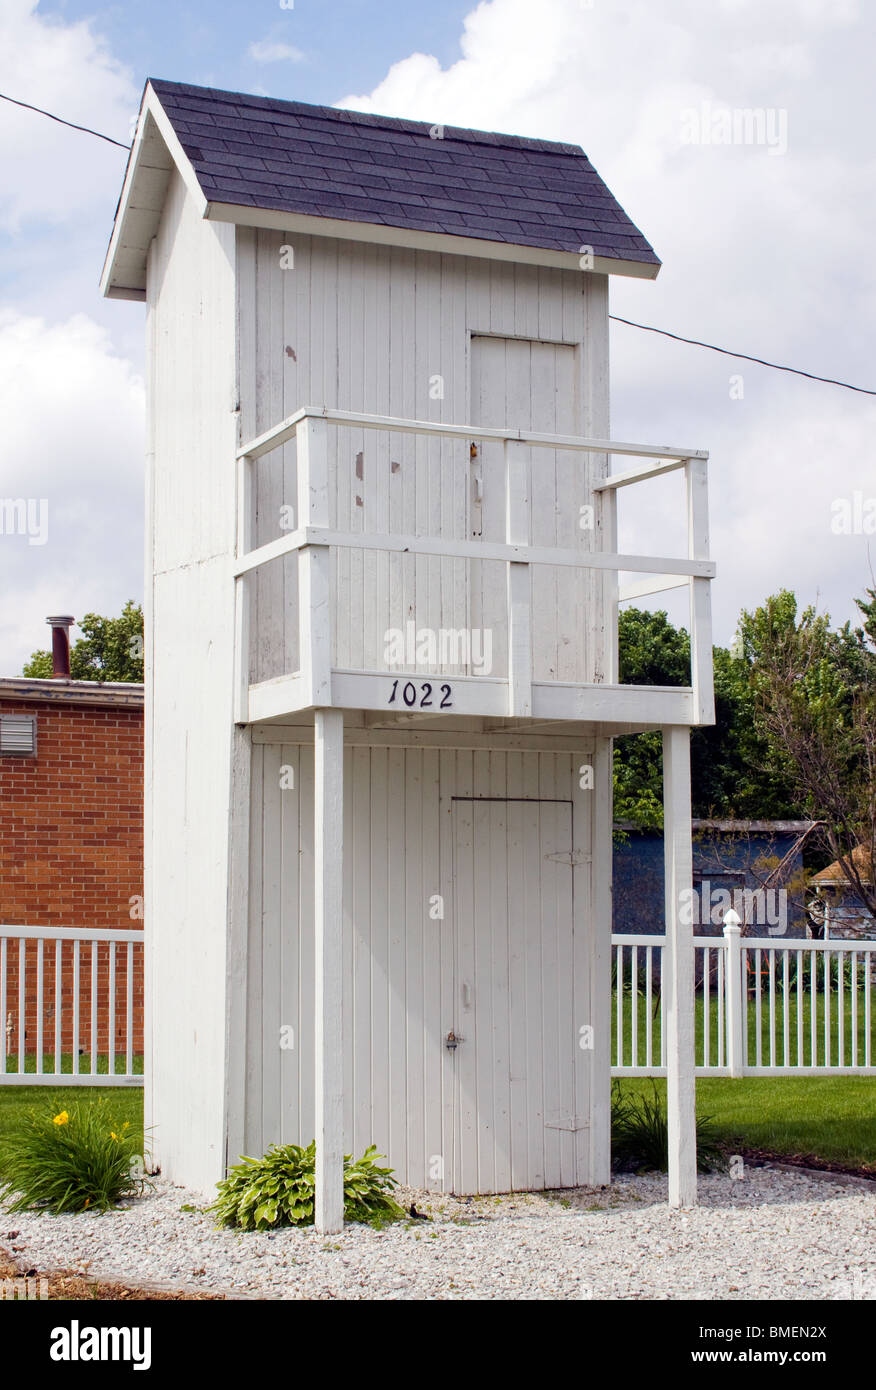 Two Story Outhouse in Gays Illinois - Stock Image